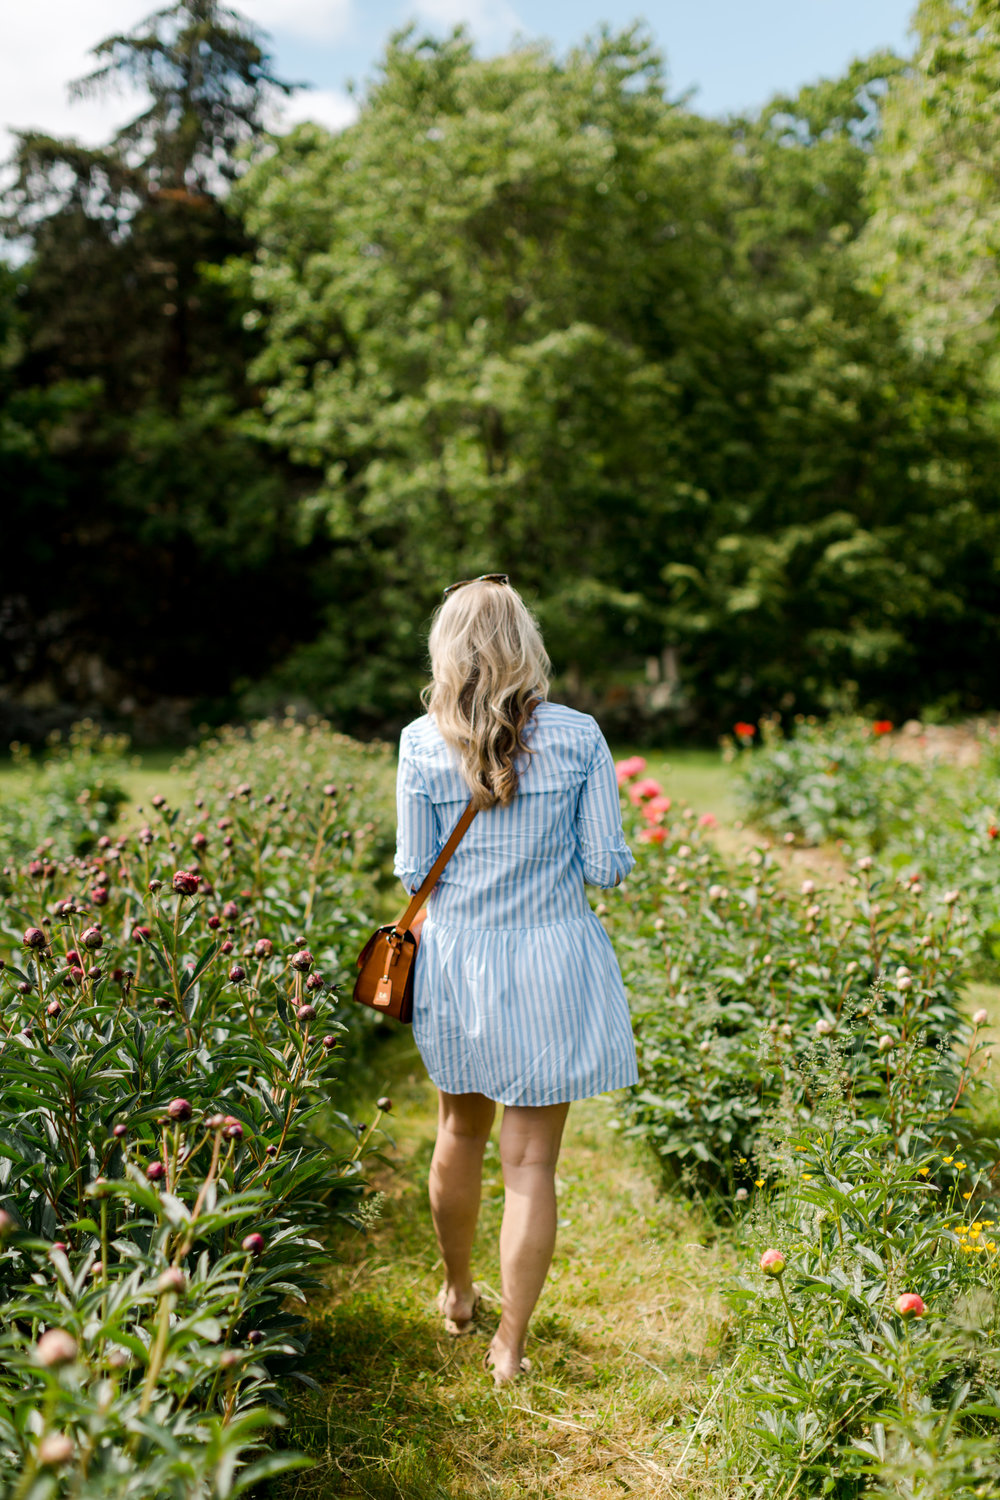 Peony Farm in Little Compton, Rhode Island from Abby Capalbo | Photography: Erin McGinn